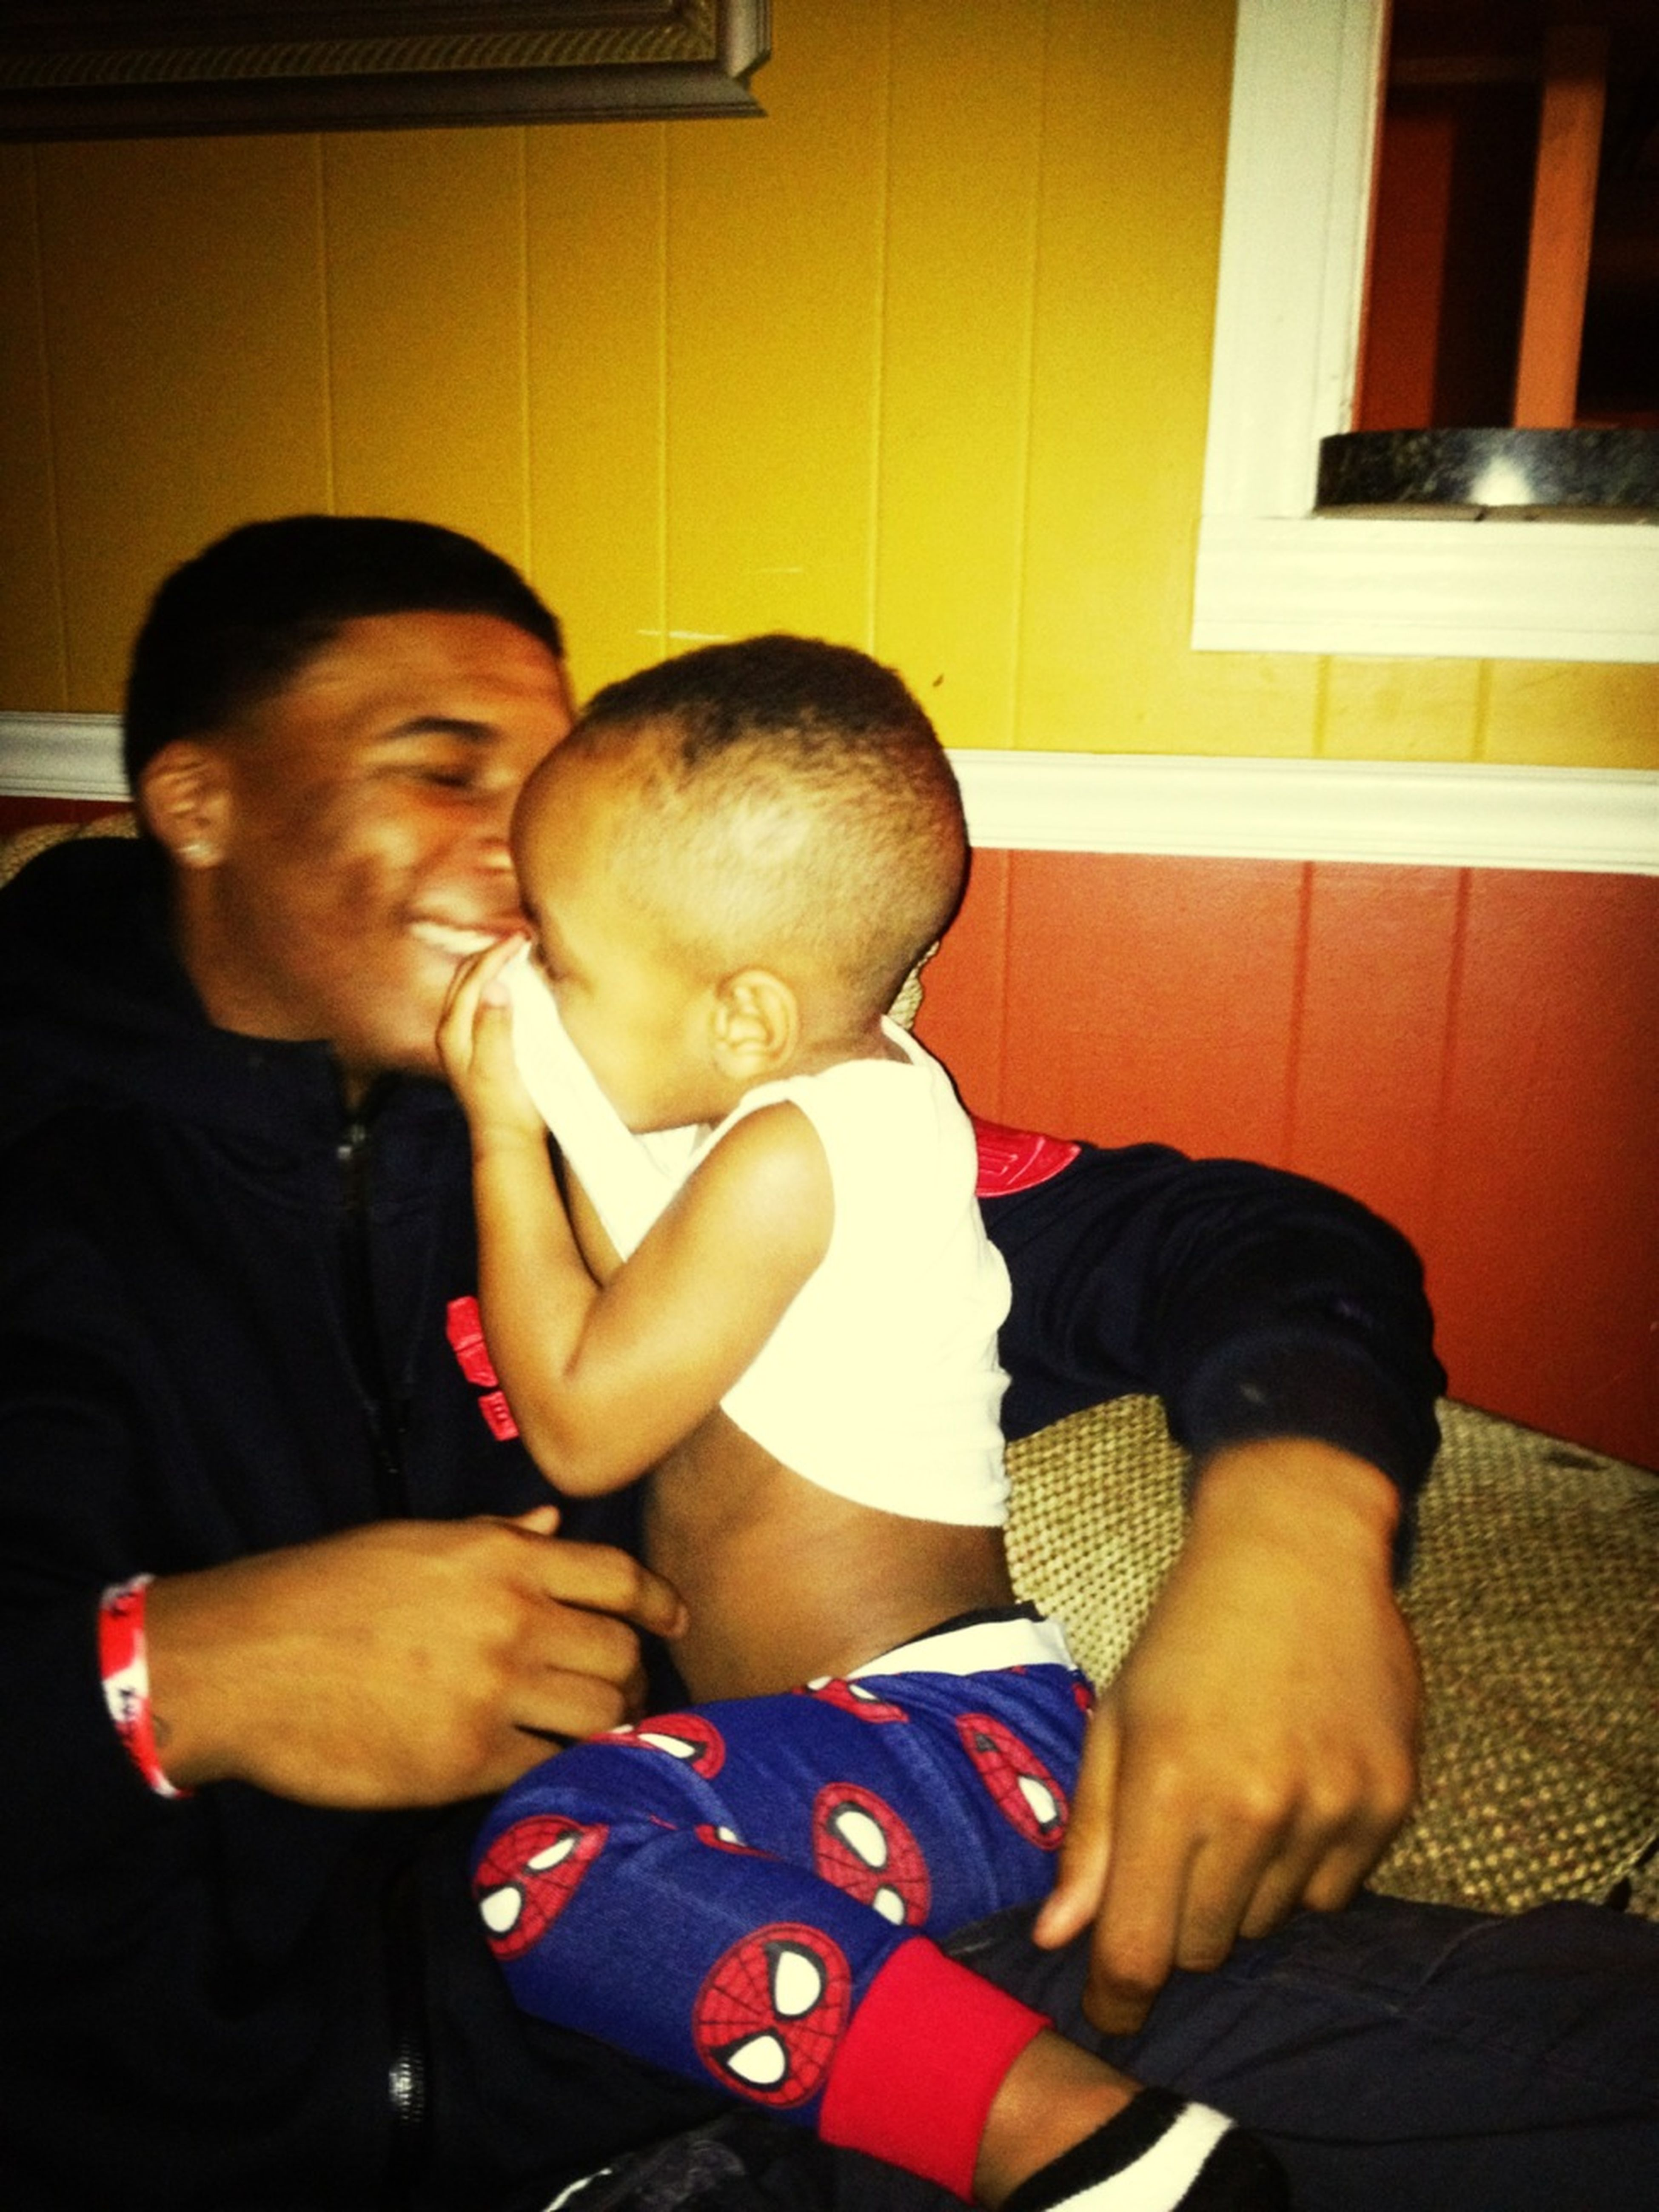 Me And Young Goon